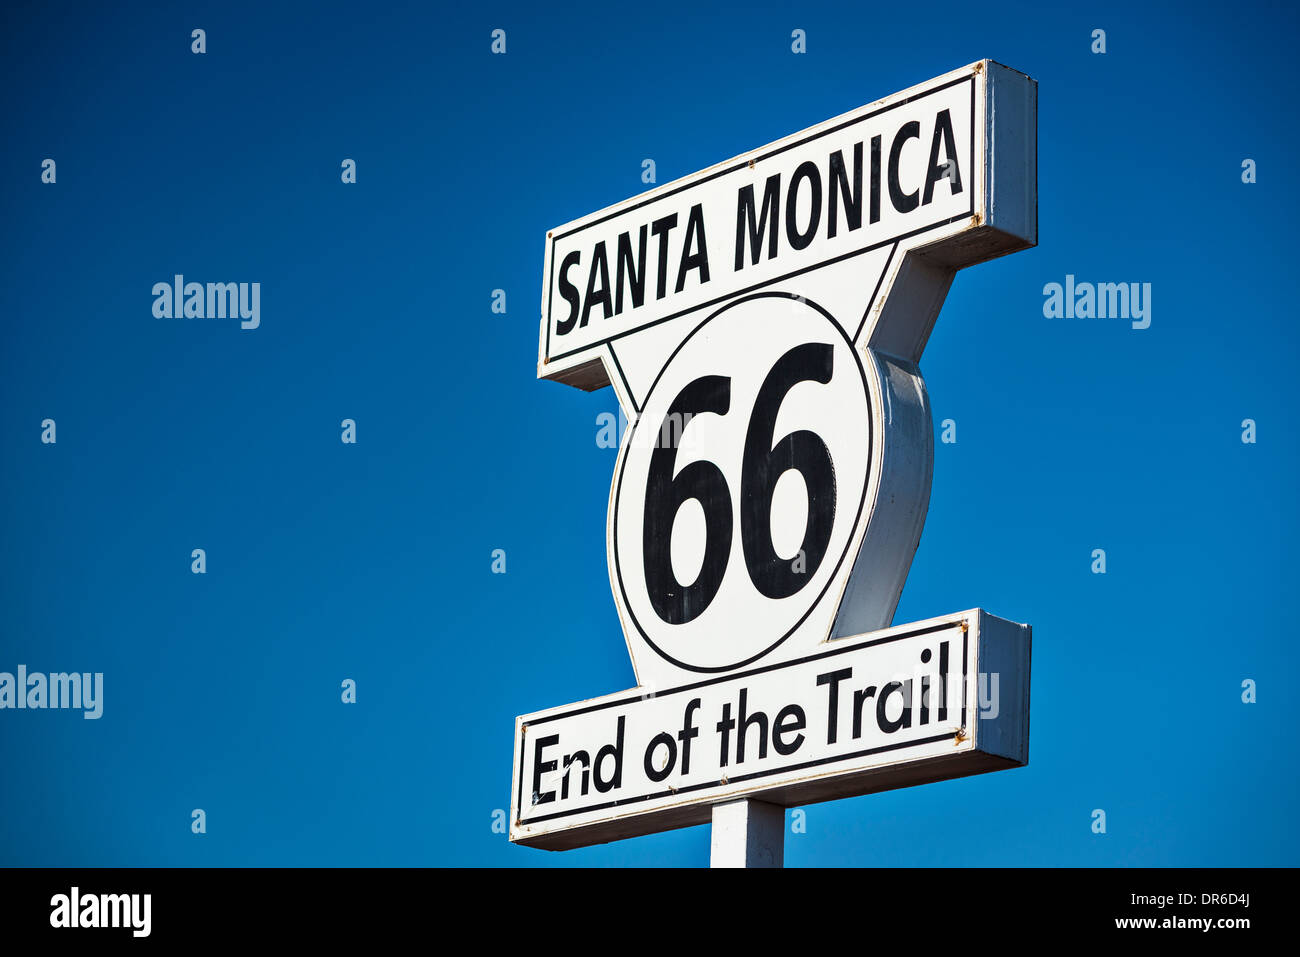 Fin du sentier Route 66 road sign in Los Angeles, Californie. Photo Stock